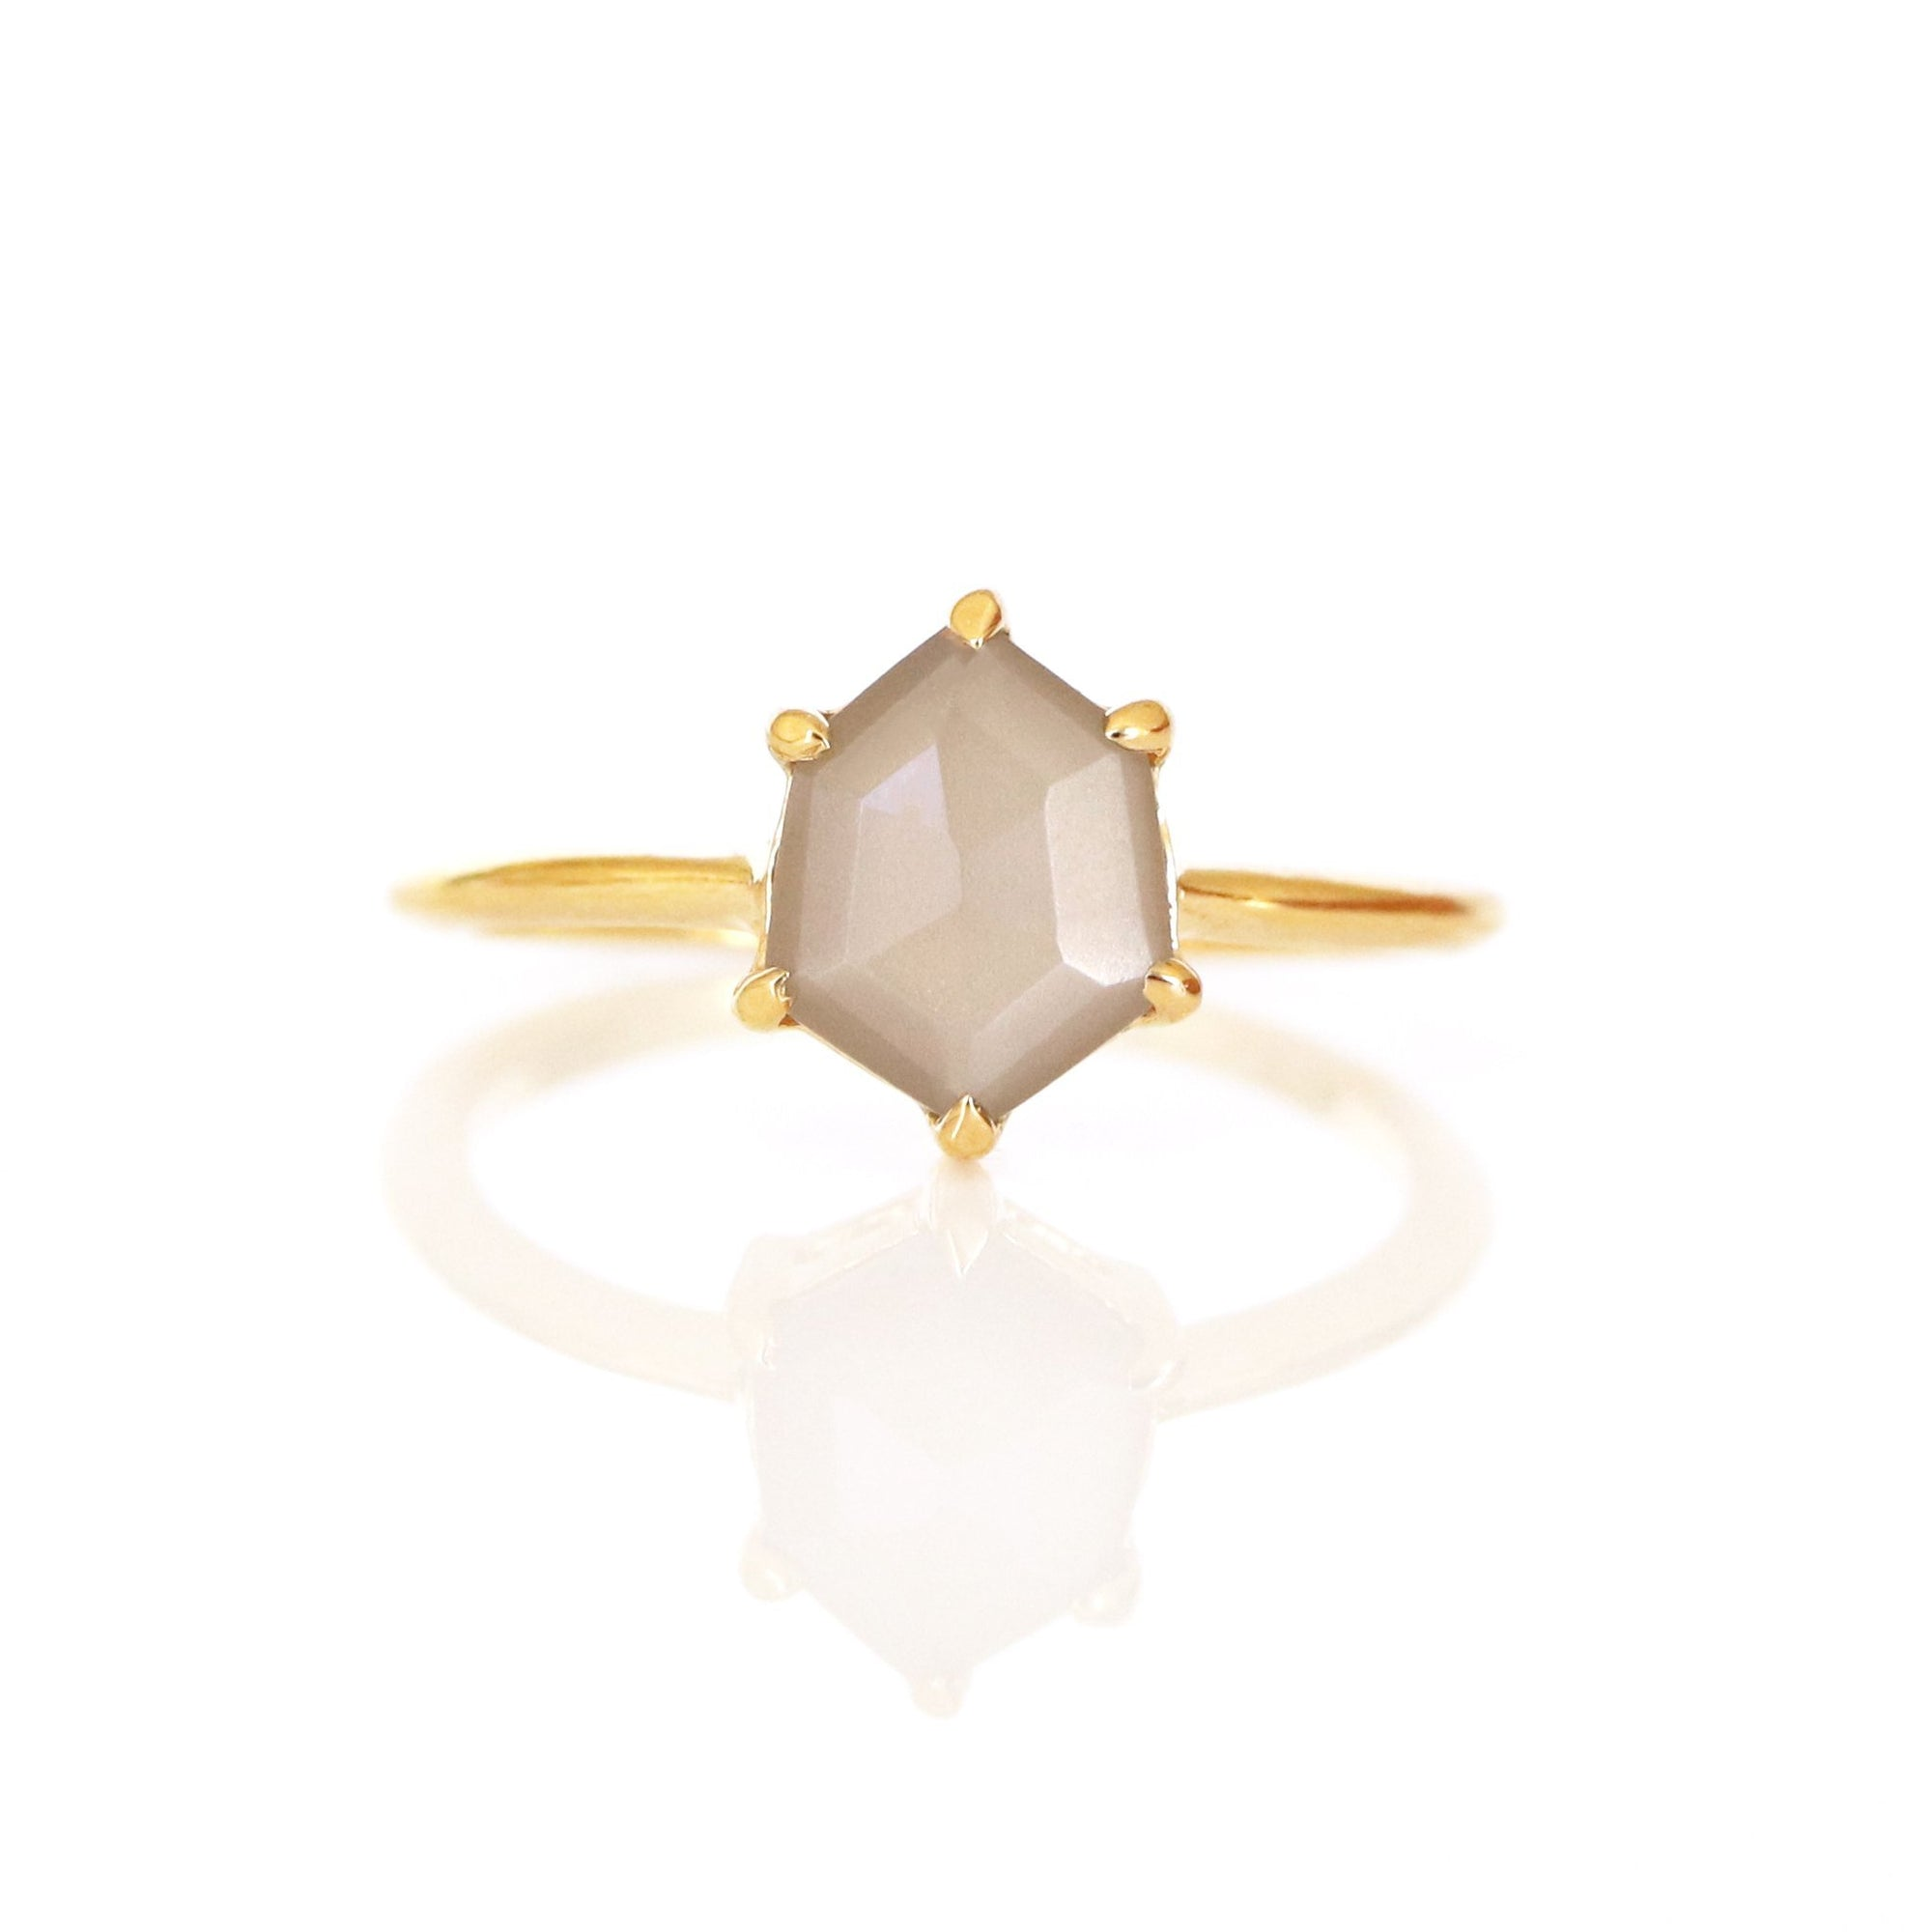 FRAICHE MINI HONOUR SHIELD RING- CHAI MOONSTONE & GOLD - SO PRETTY CARA COTTER